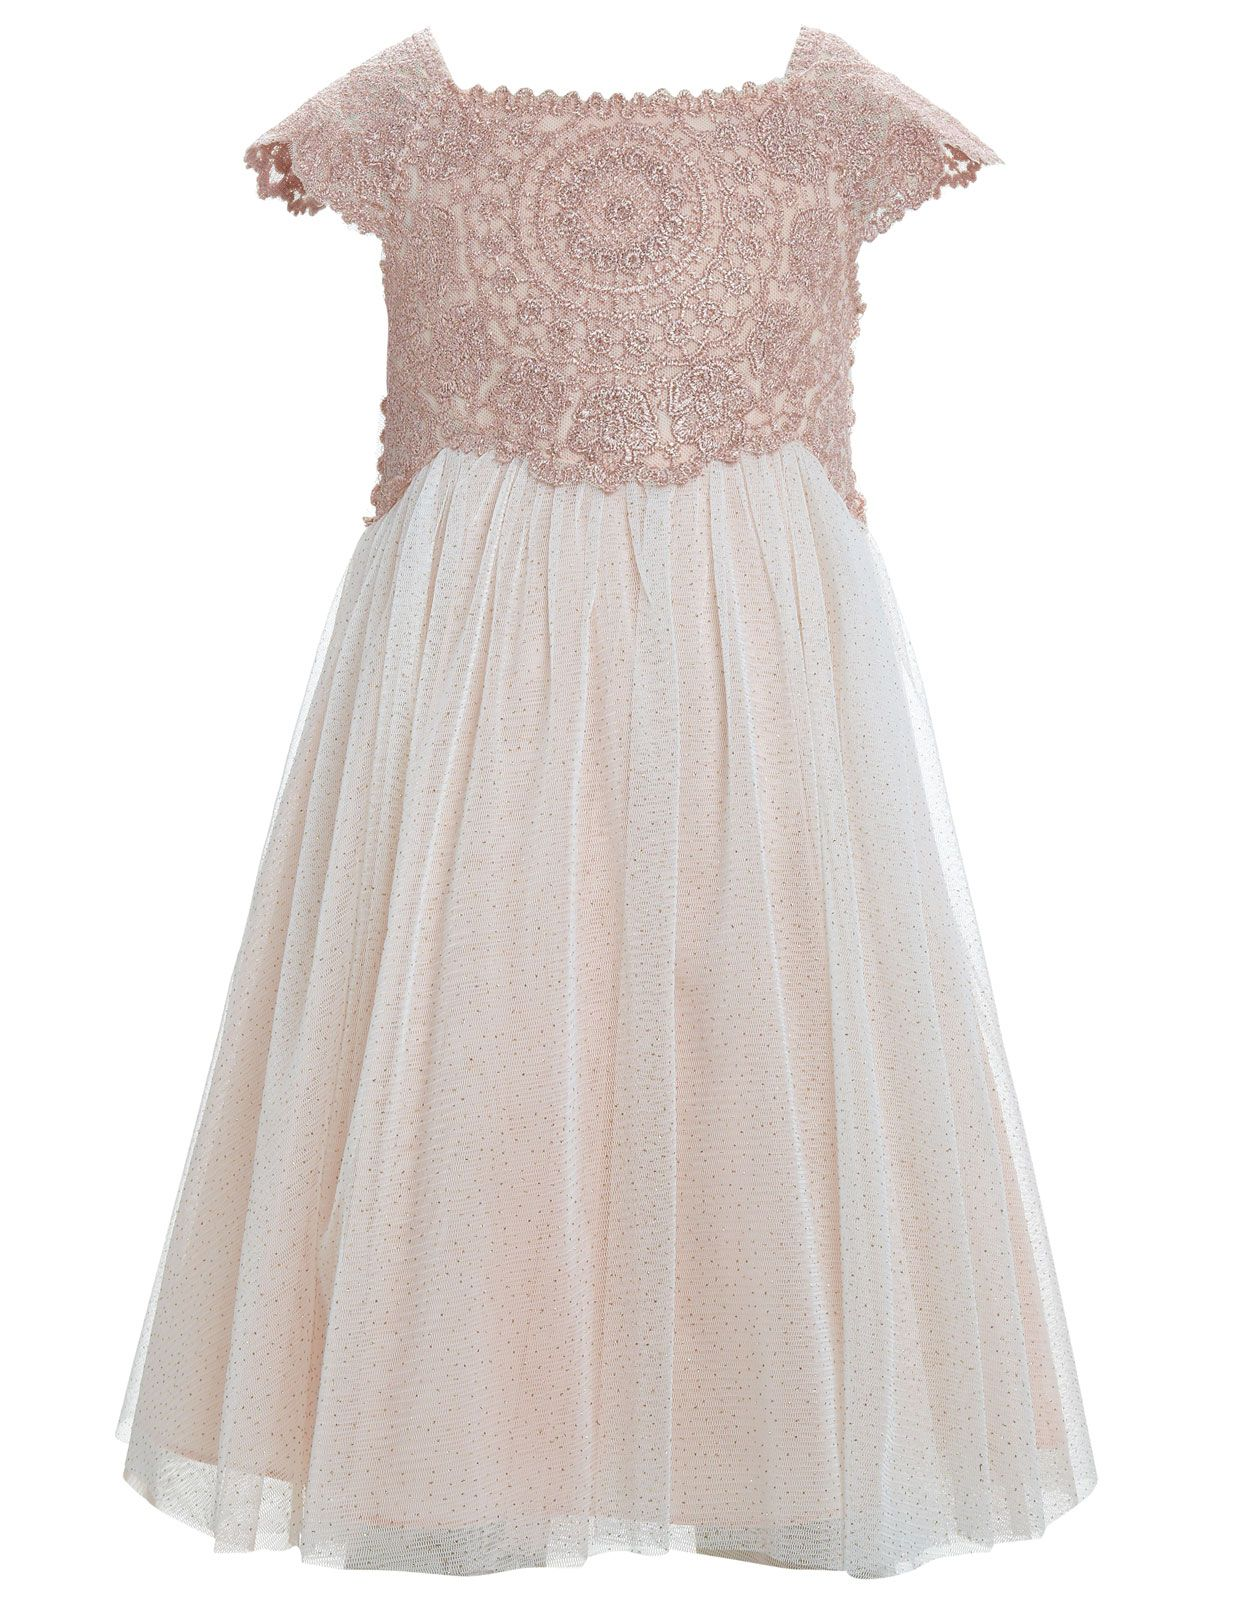 a47b9390c Don't know if you've looked in Monsoon at flower girl dresses or not - not  too expensive and really floaty/fairy-ish - they pics on here don't really  do ...